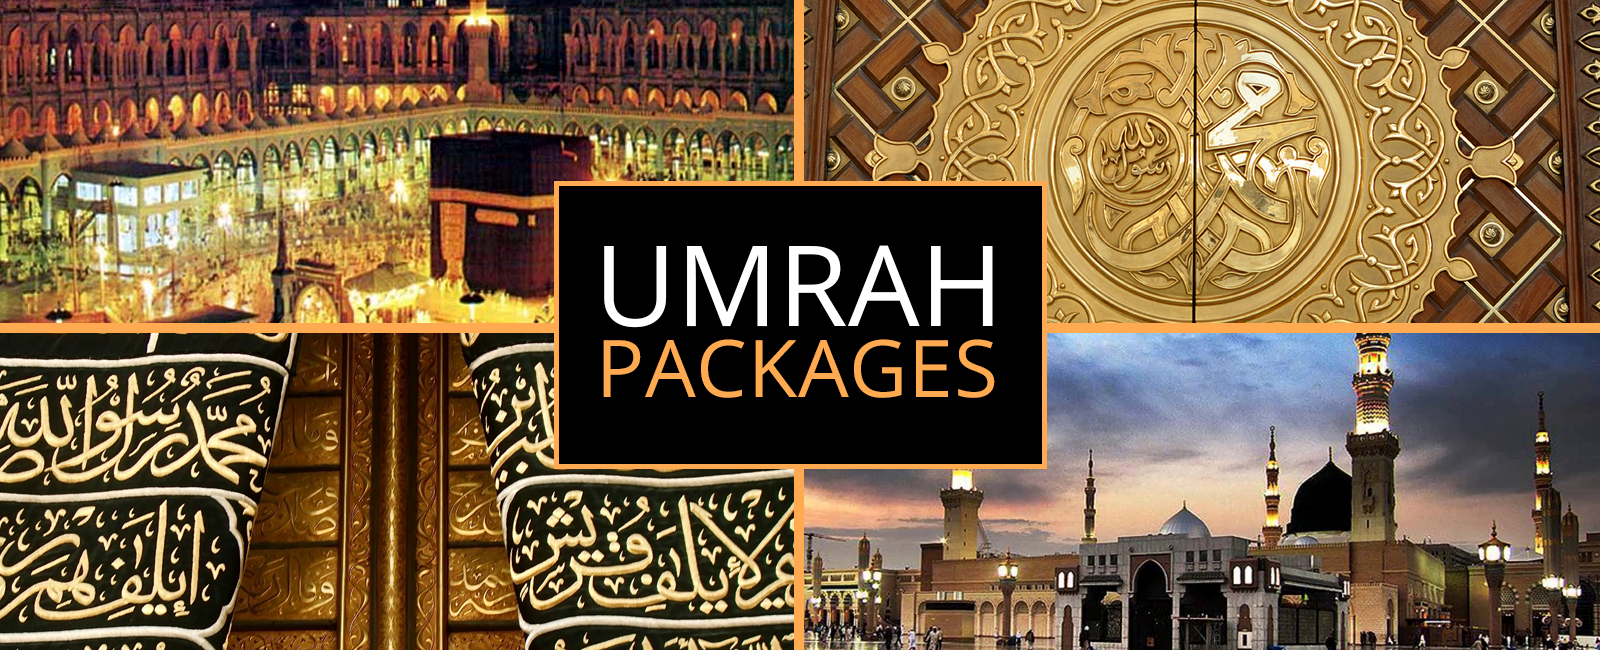 Umrah Banner: Travel With Us